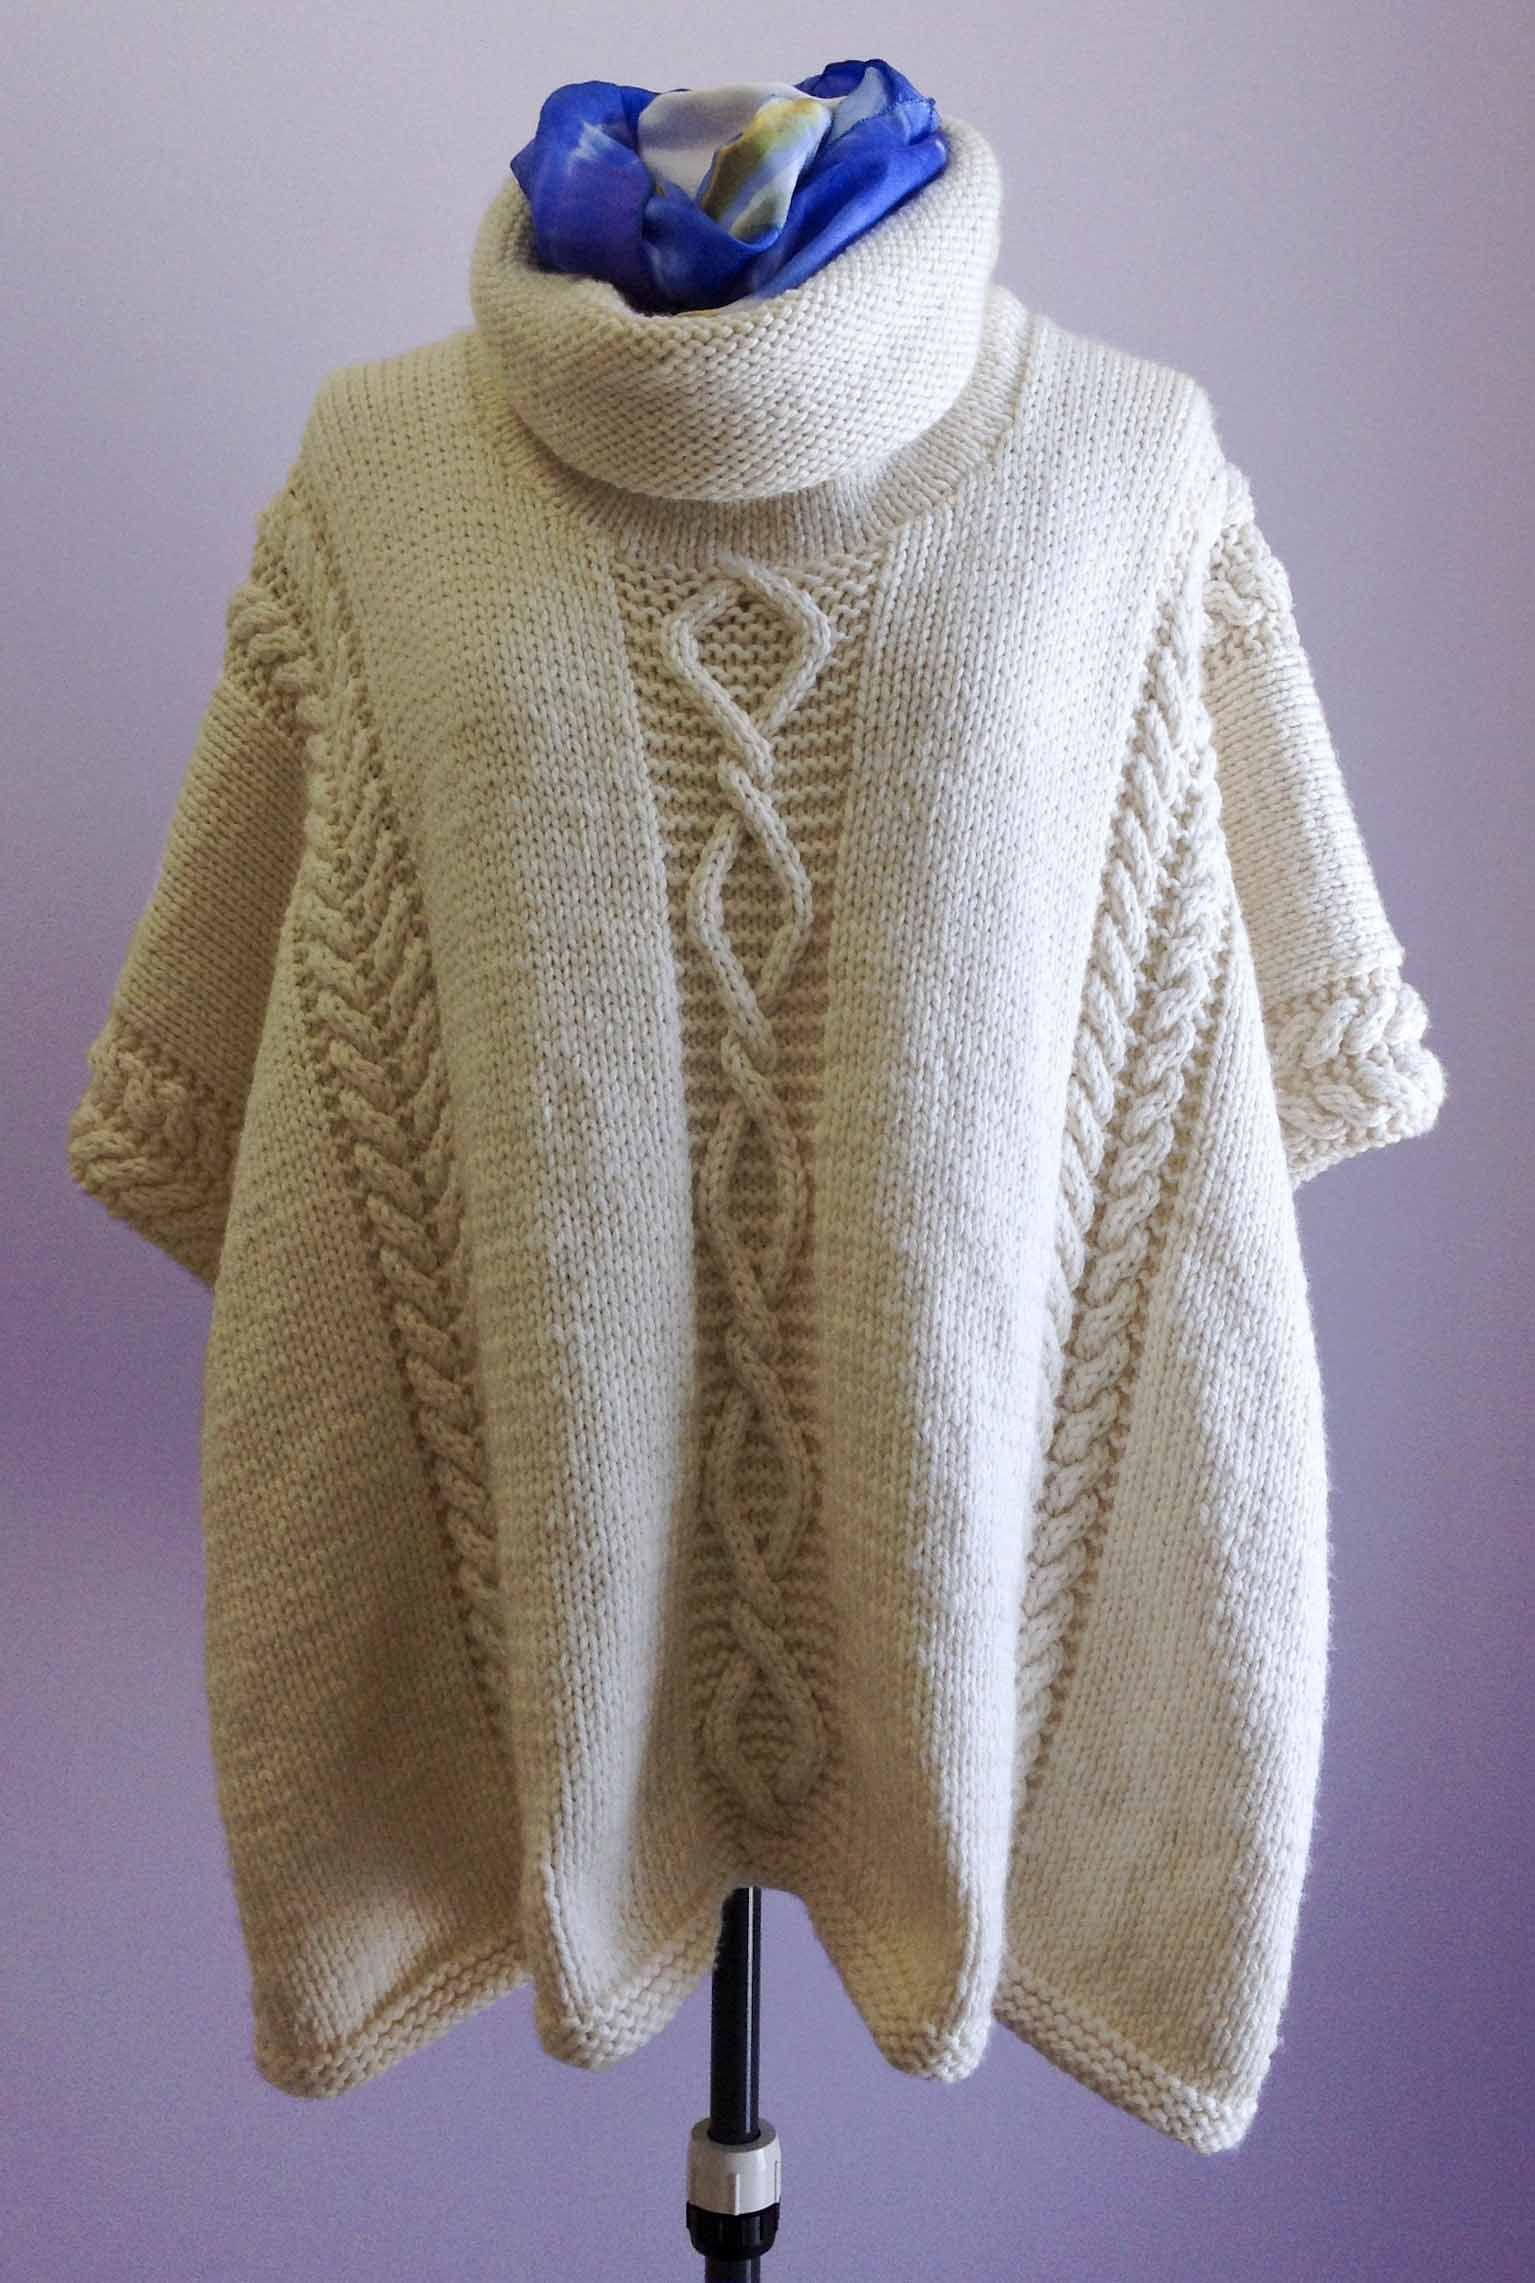 click for close-up   Poncho knitting patterns, Knitted ...